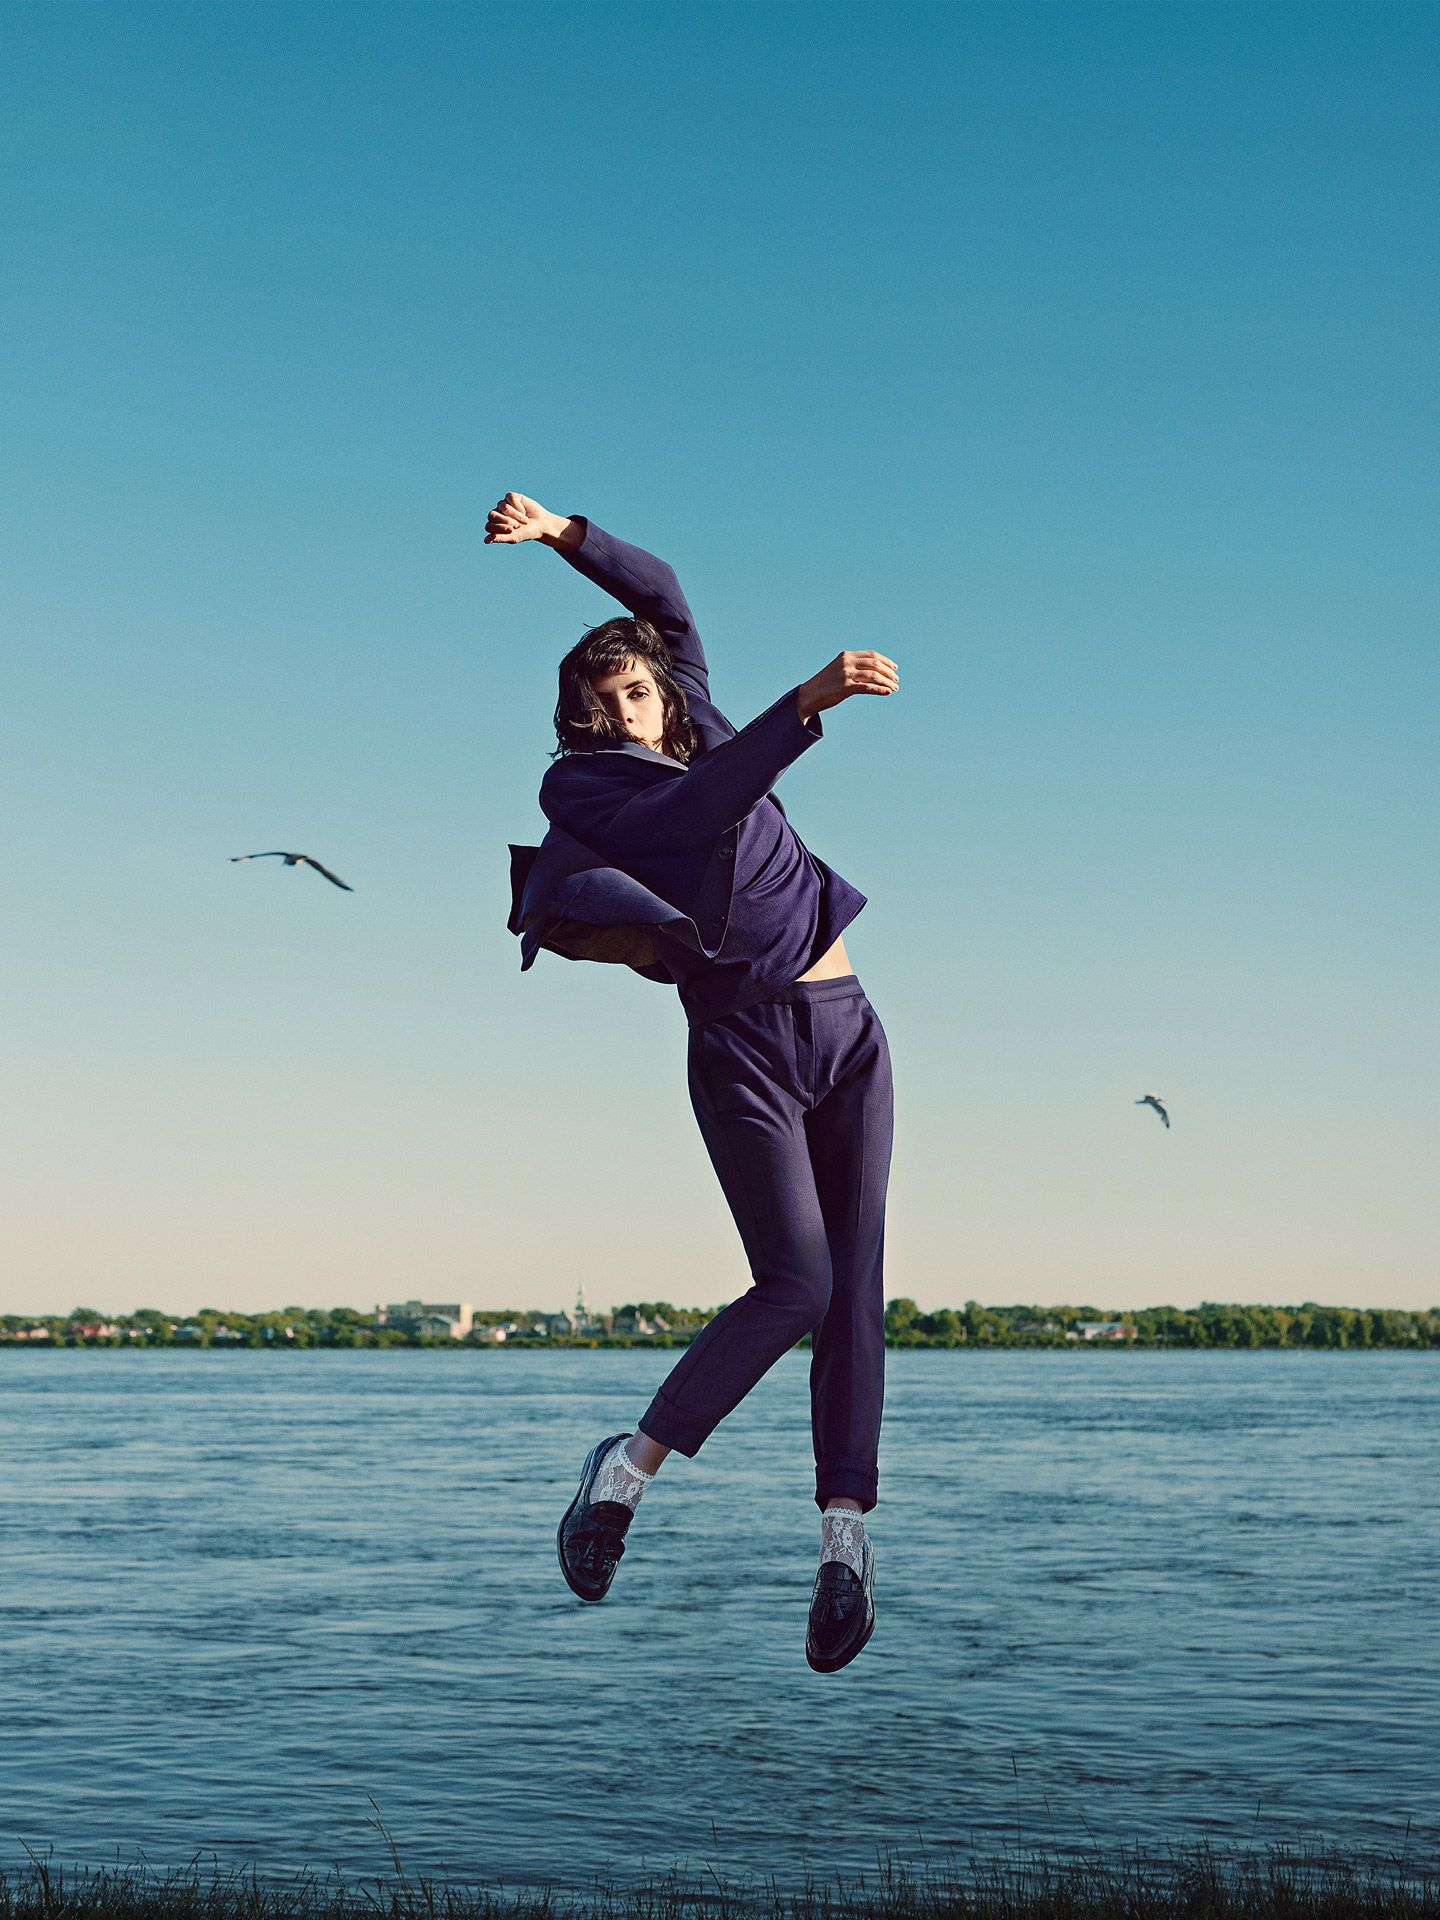 teenage dancer Clara Furey portrait dancing jumping in the air next to a lake by Guillaume Simoneau for Nouveau Projet with Atelier 10